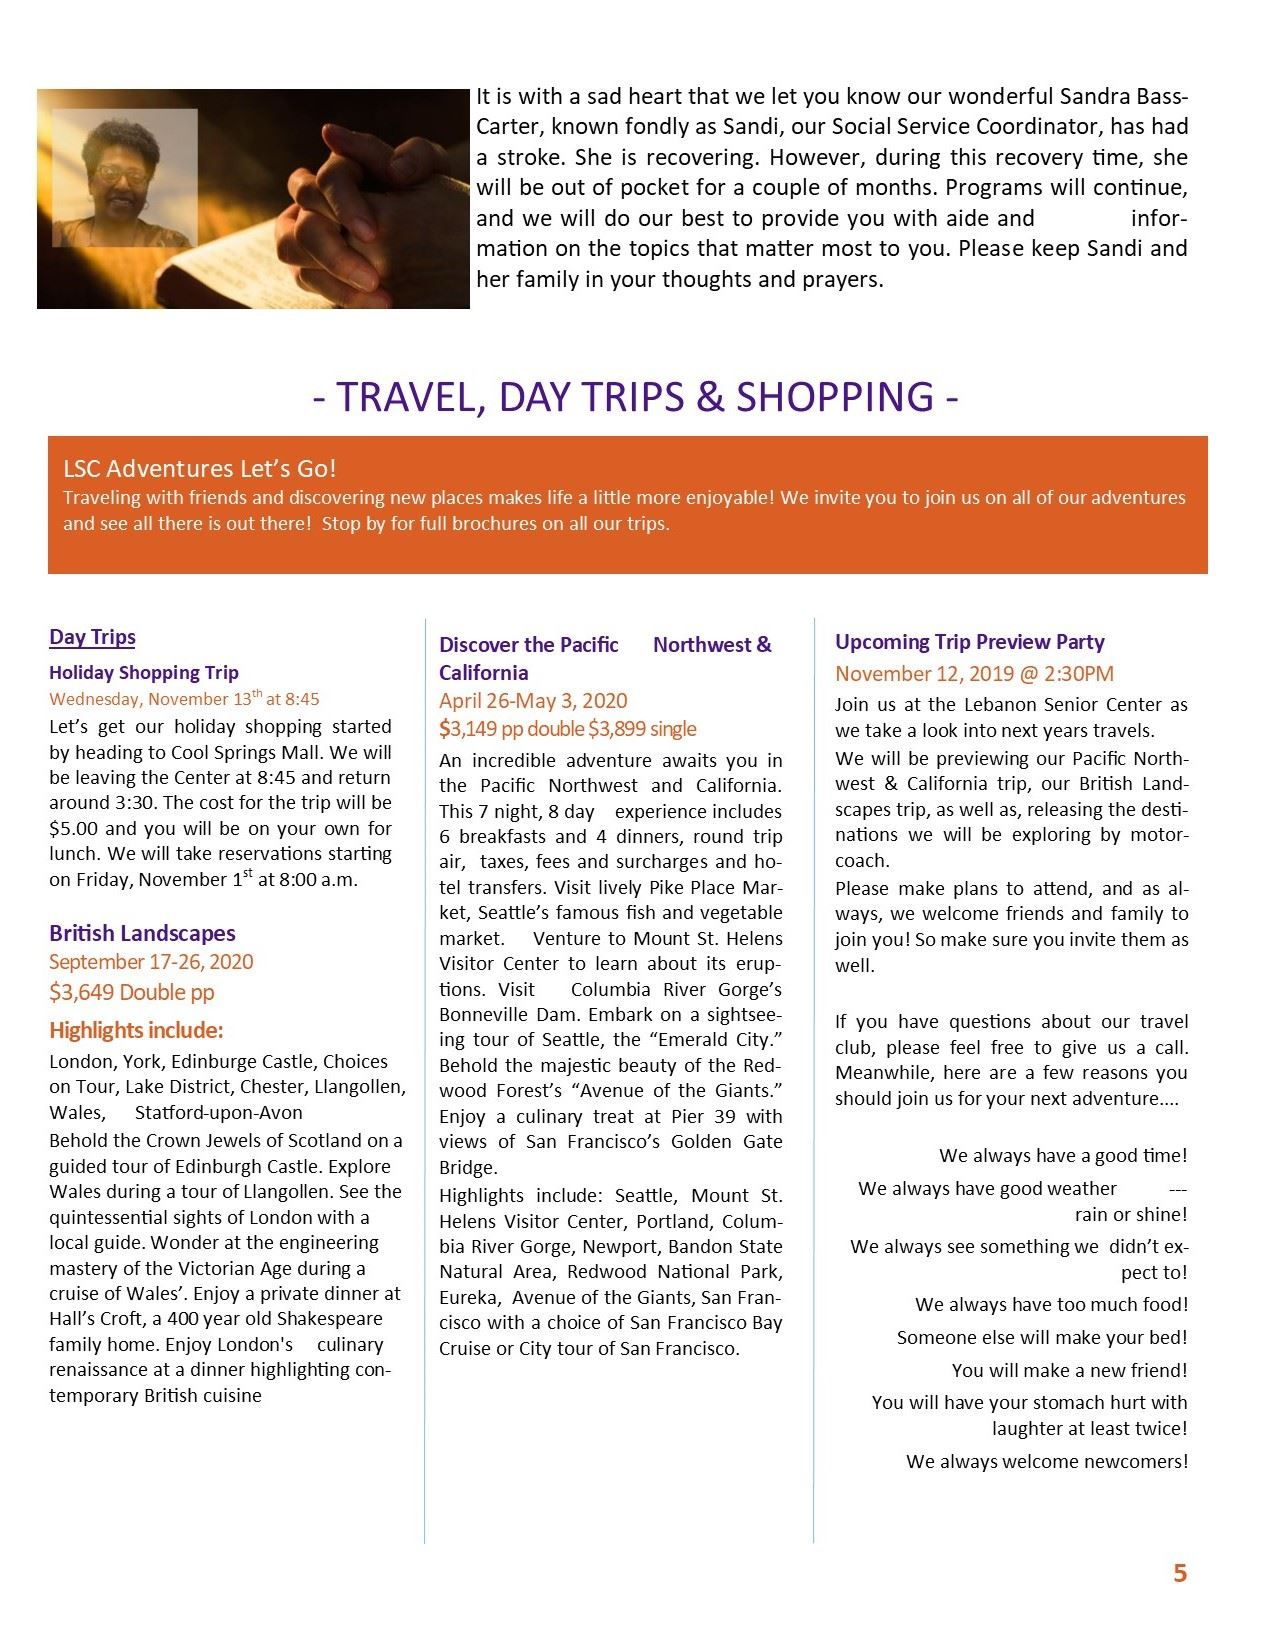 Newsletter pg 5 trips